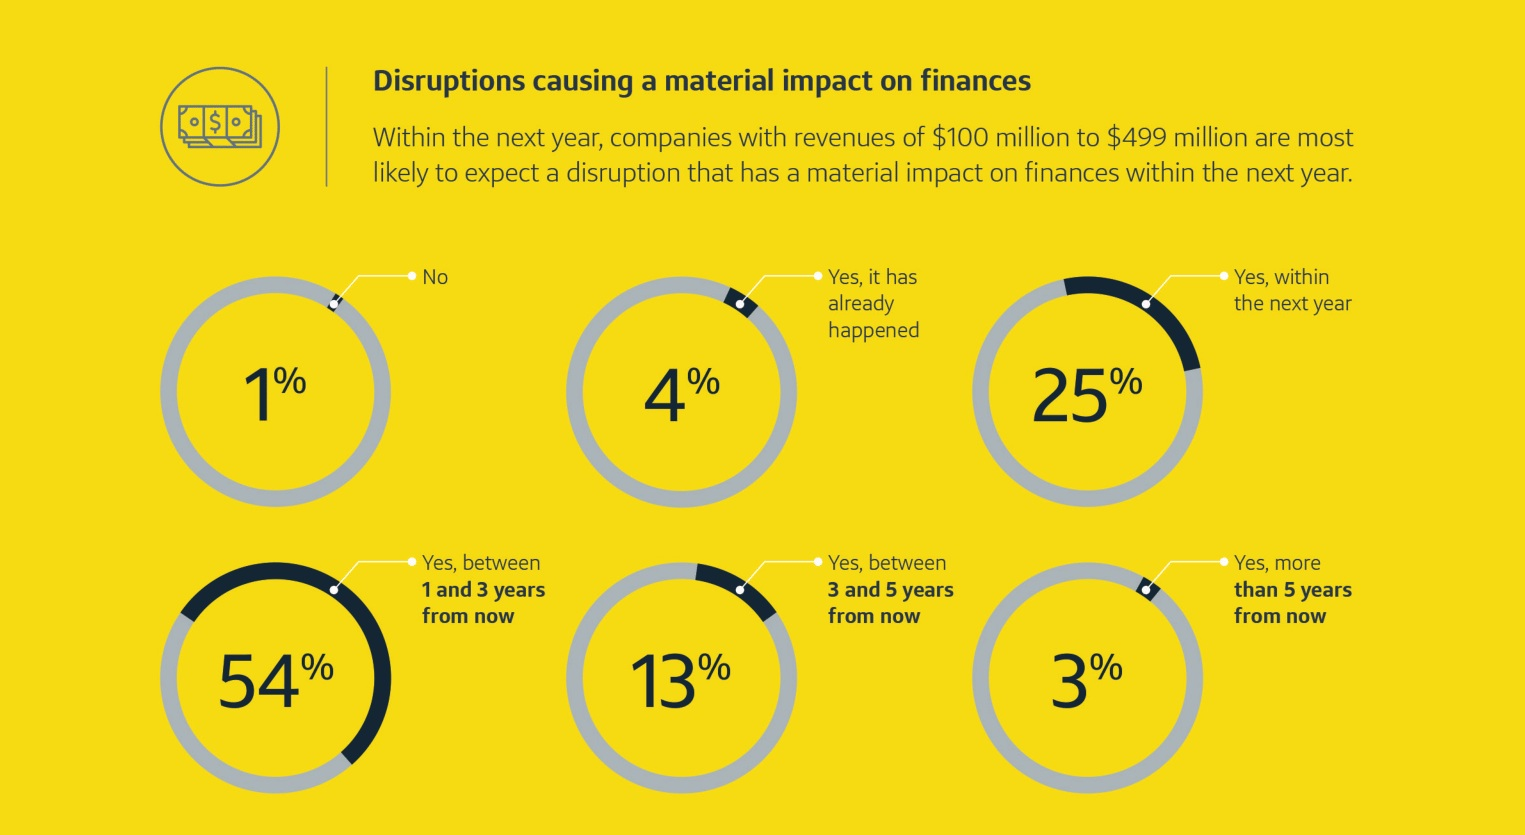 disruptions causing a material impact on finances